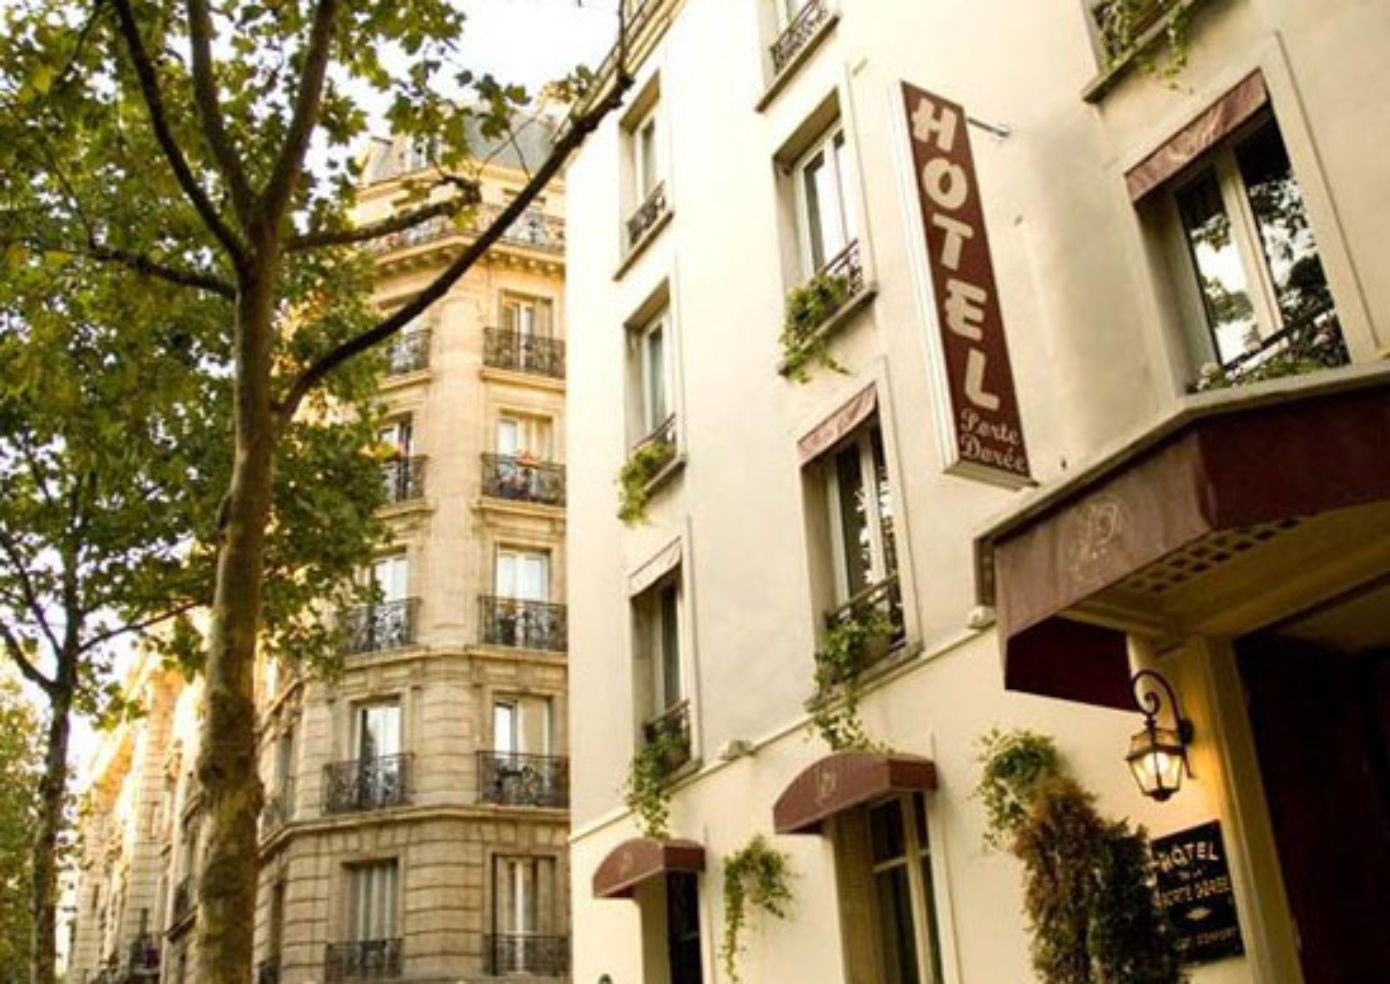 Hotel de la Porte Doree in Paris